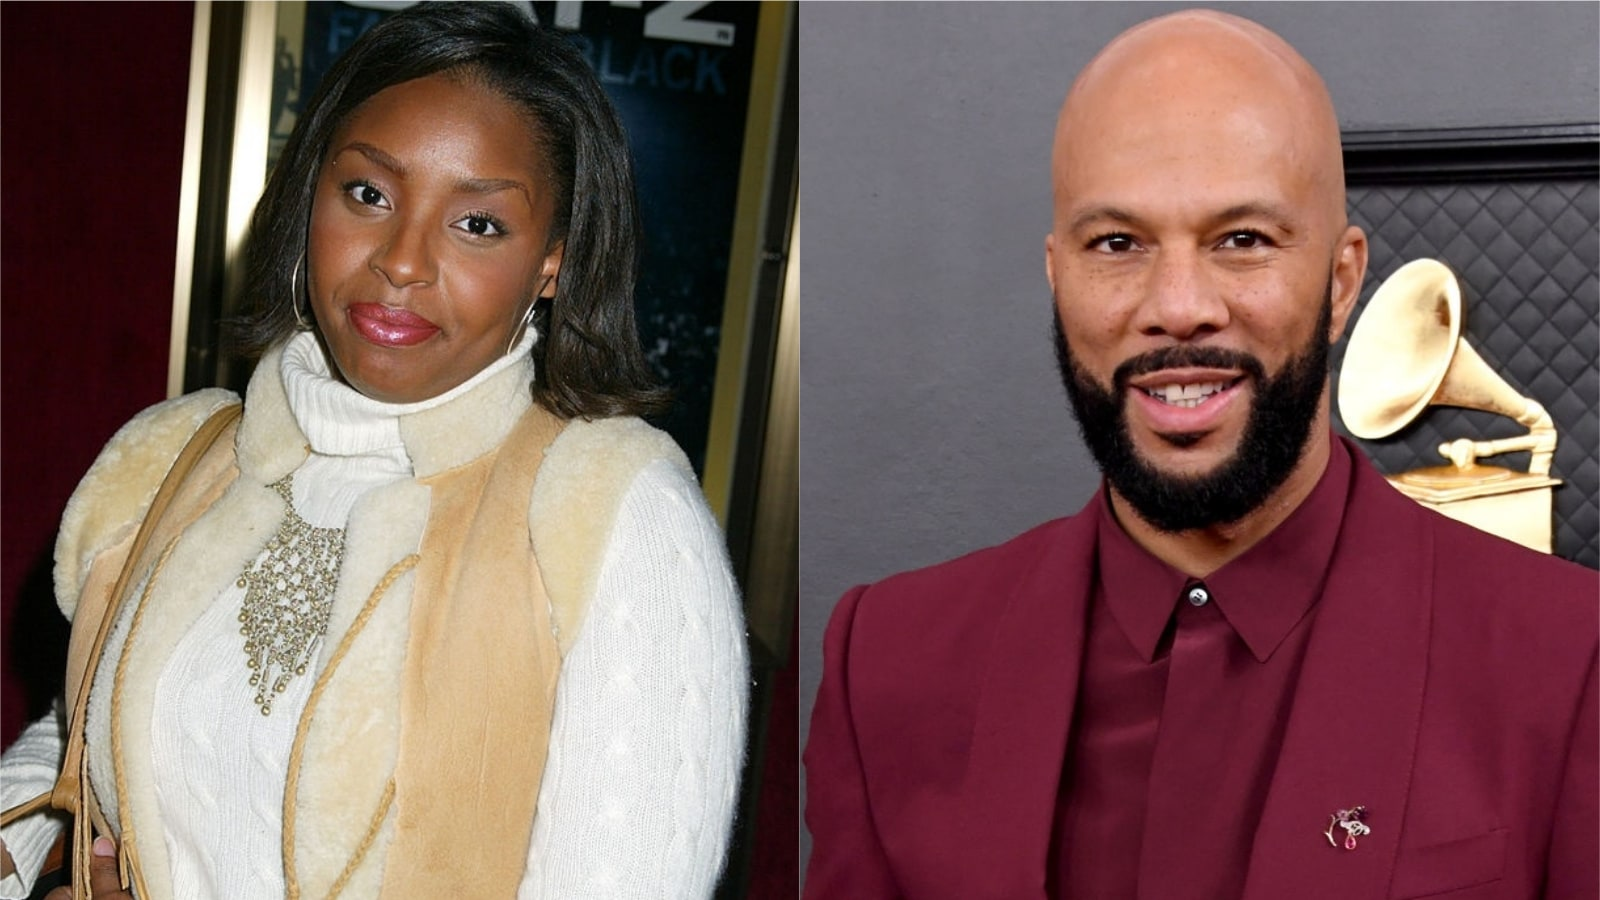 Philly Singer Jaguar Wright Says She Was Sexually Assaulted By Common